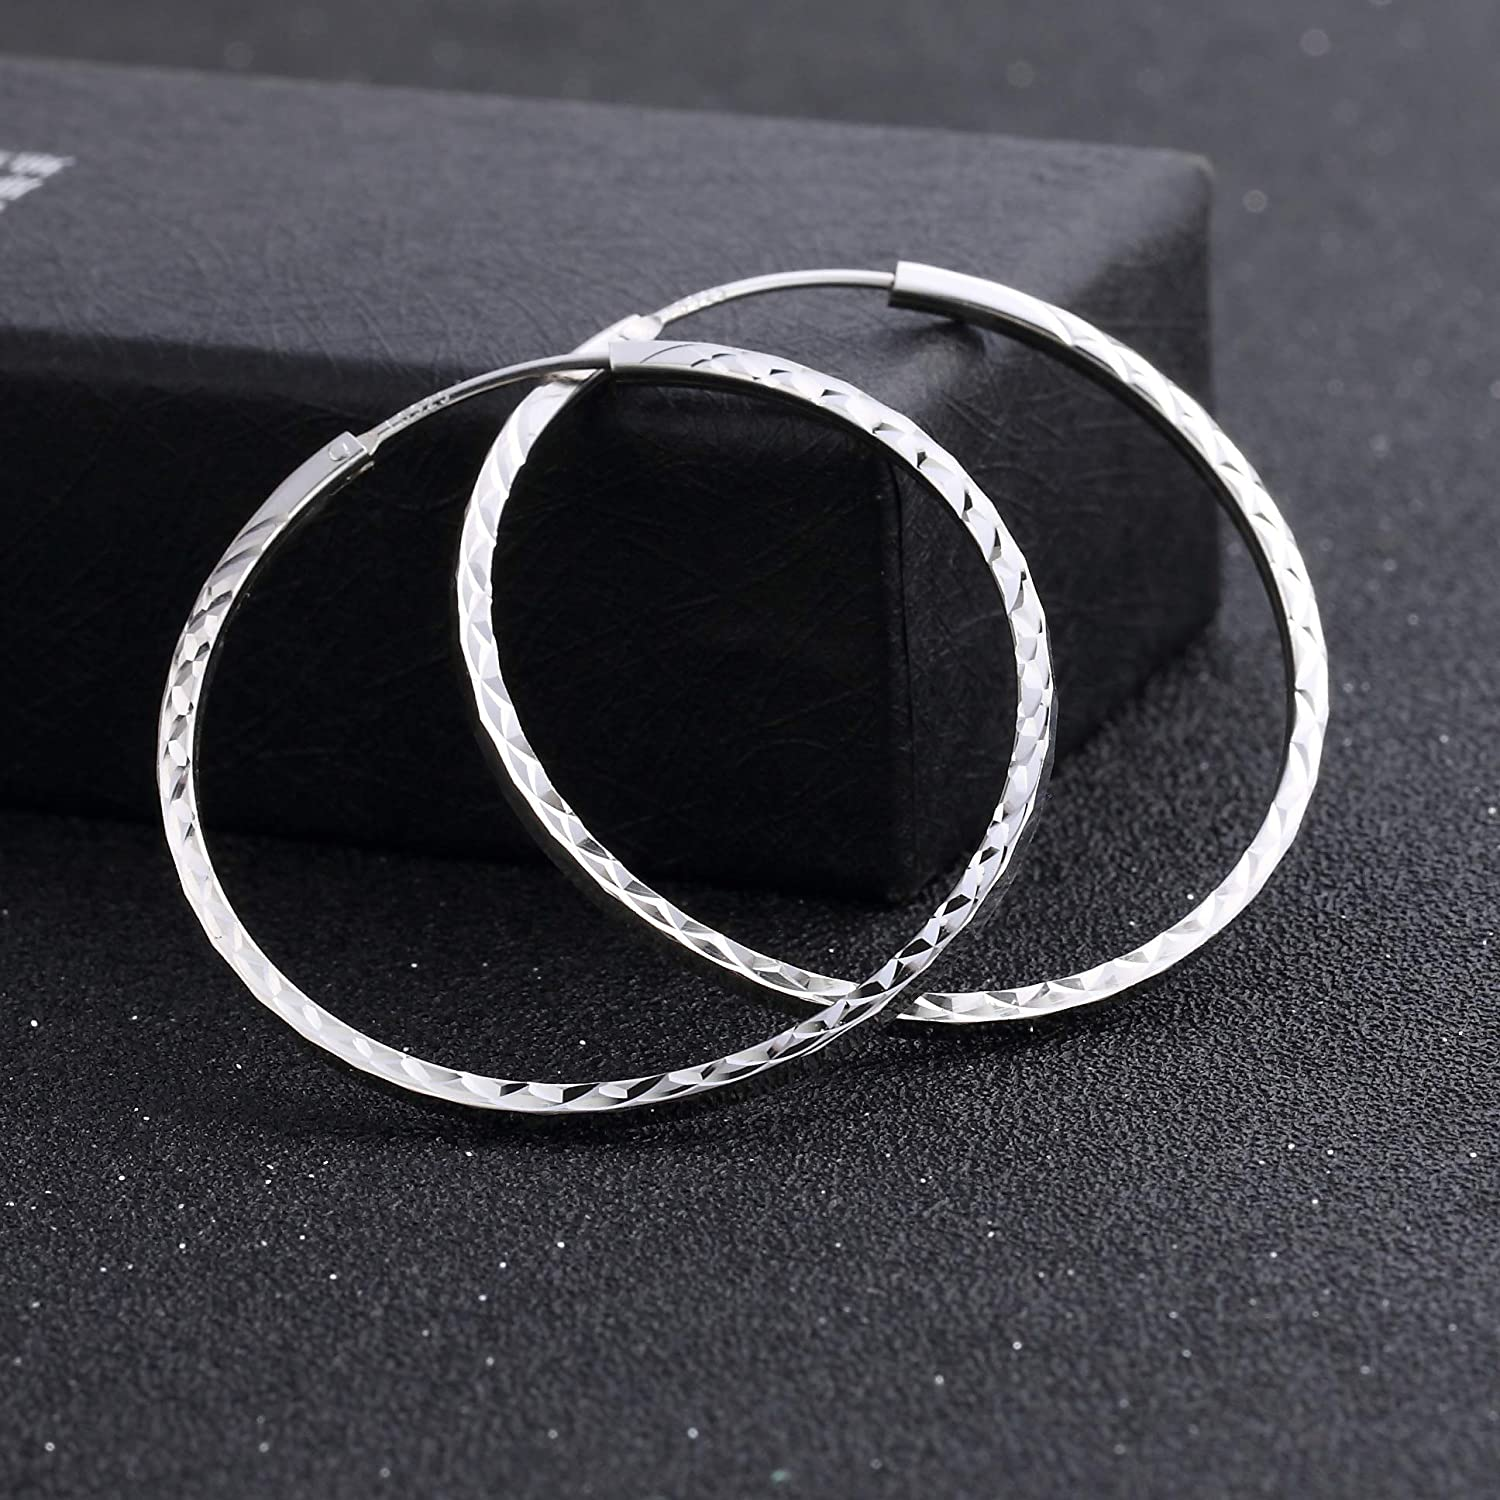 FHX 2019 New European and American Personality Big Circle 925 Sterling Silver Ladies Jewelry Simple Hoop Earrings for Women Girls Gift.